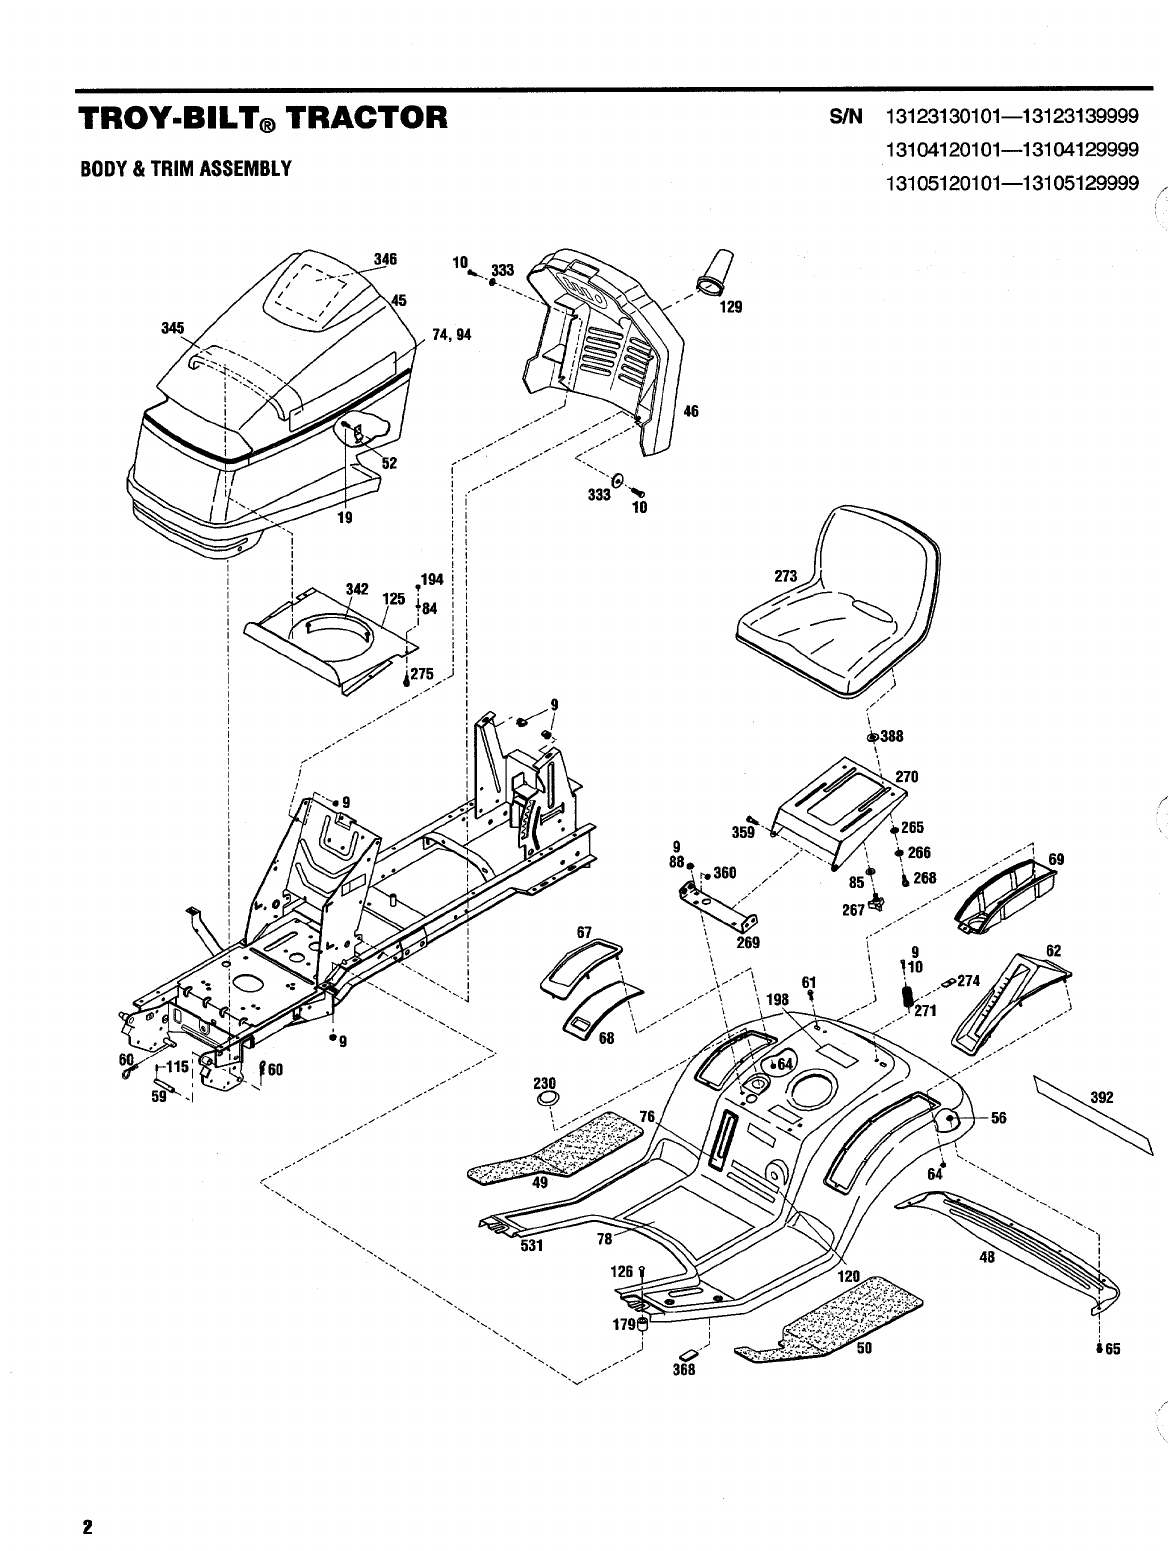 Page 2 of Troy-Bilt Lawn Mower 13105 User Guide